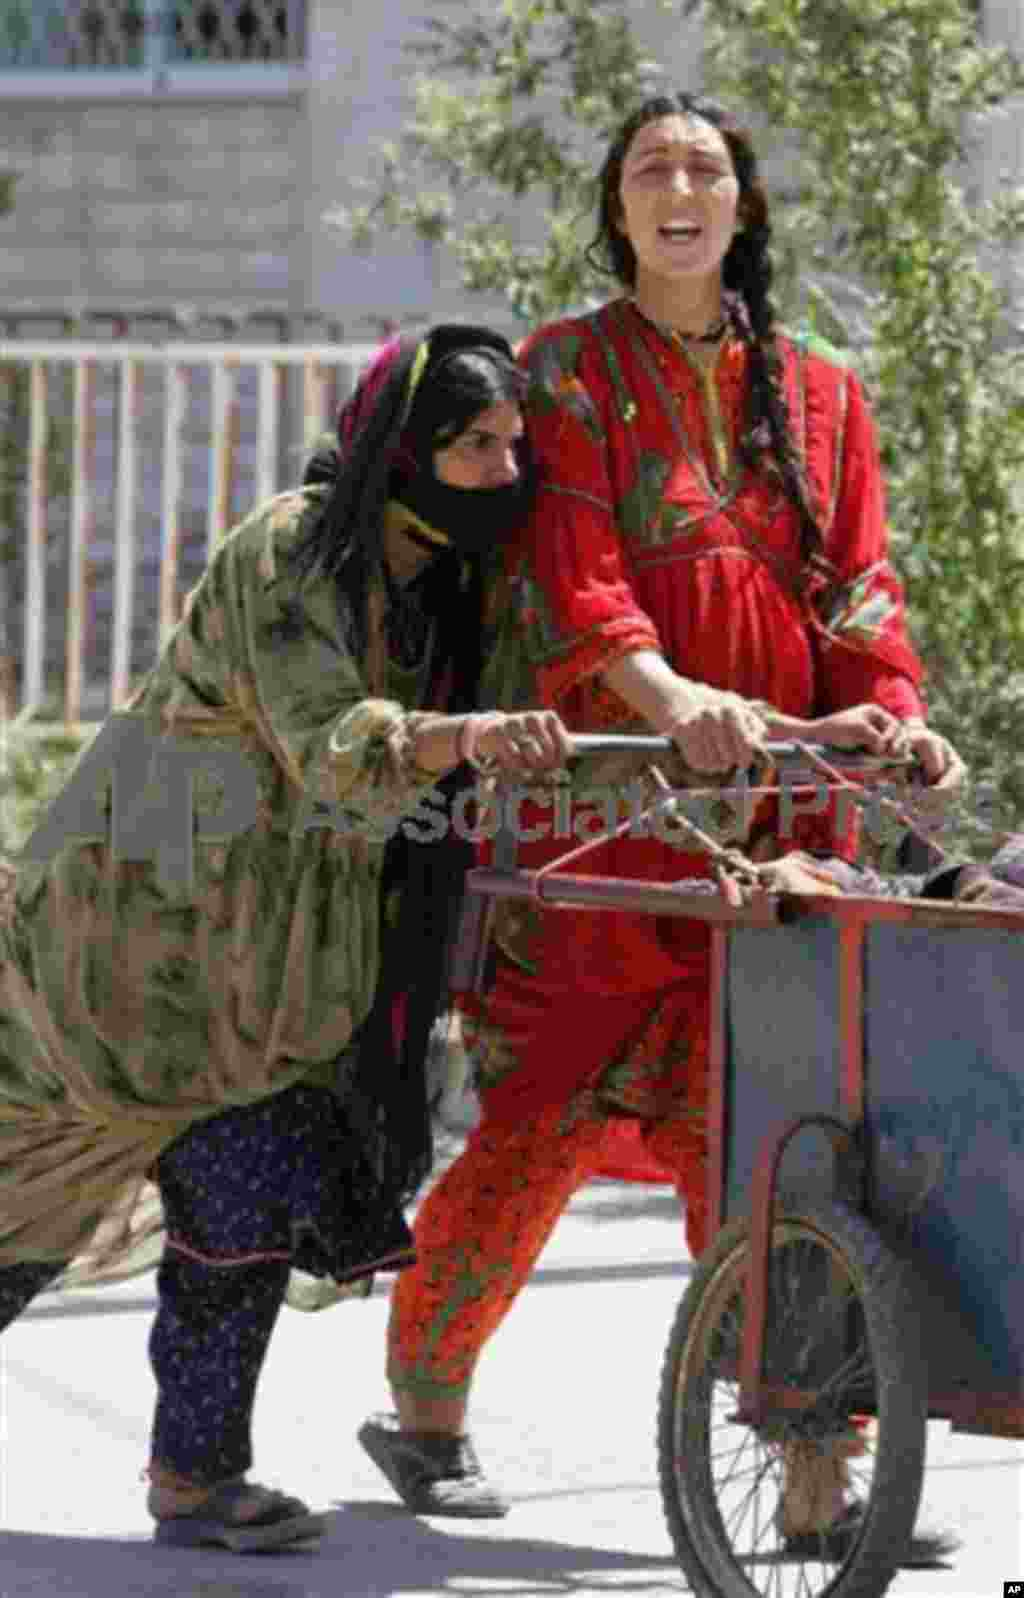 Two gypsy women push a cart in a rich west Amman neighborhood Thursday March 29, 2007